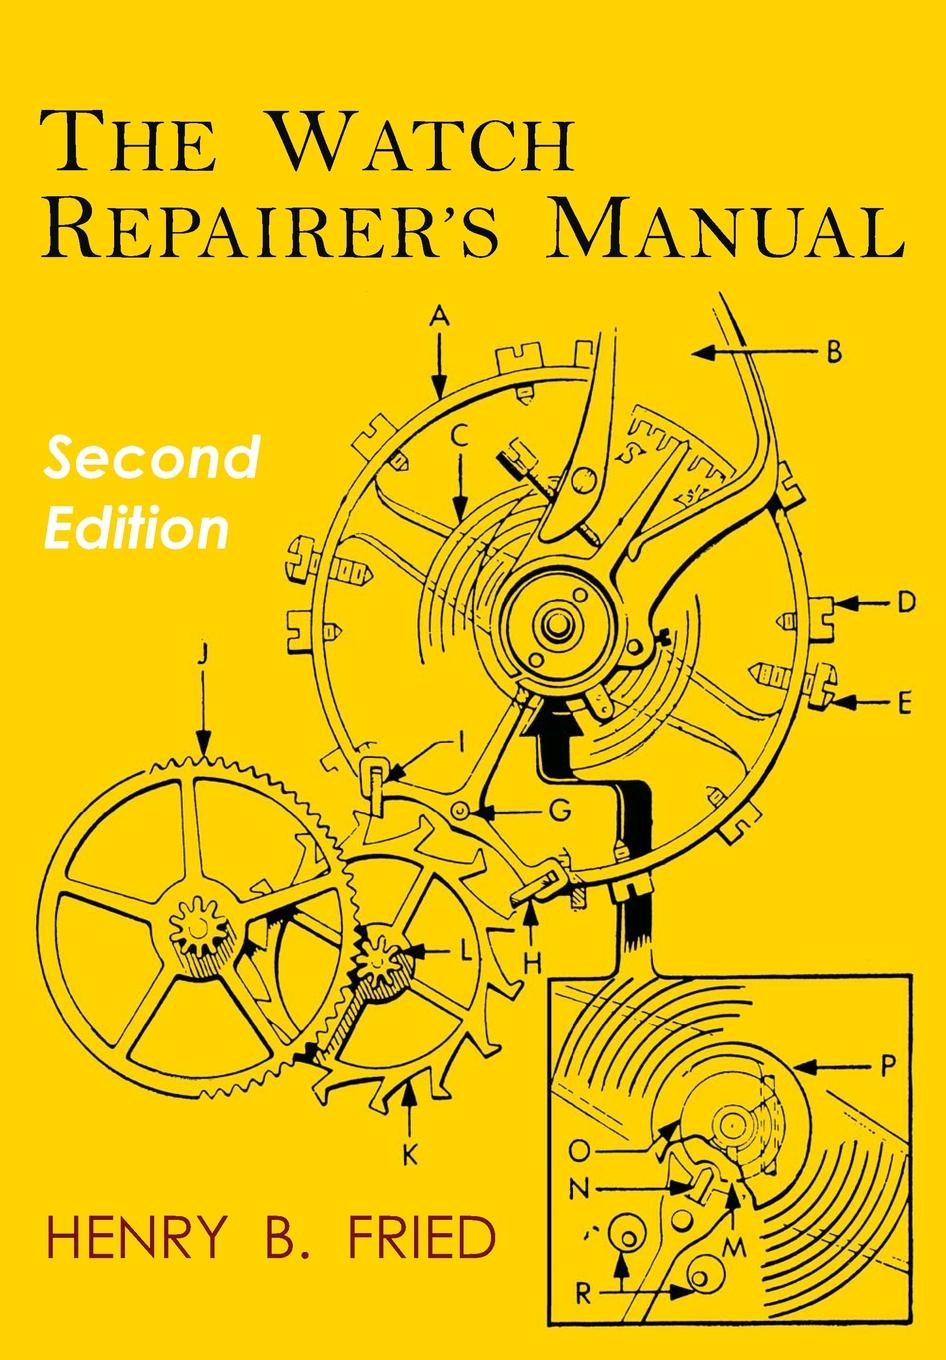 Henry B. Fried. The Watch Repairer's Manual. Second Edition